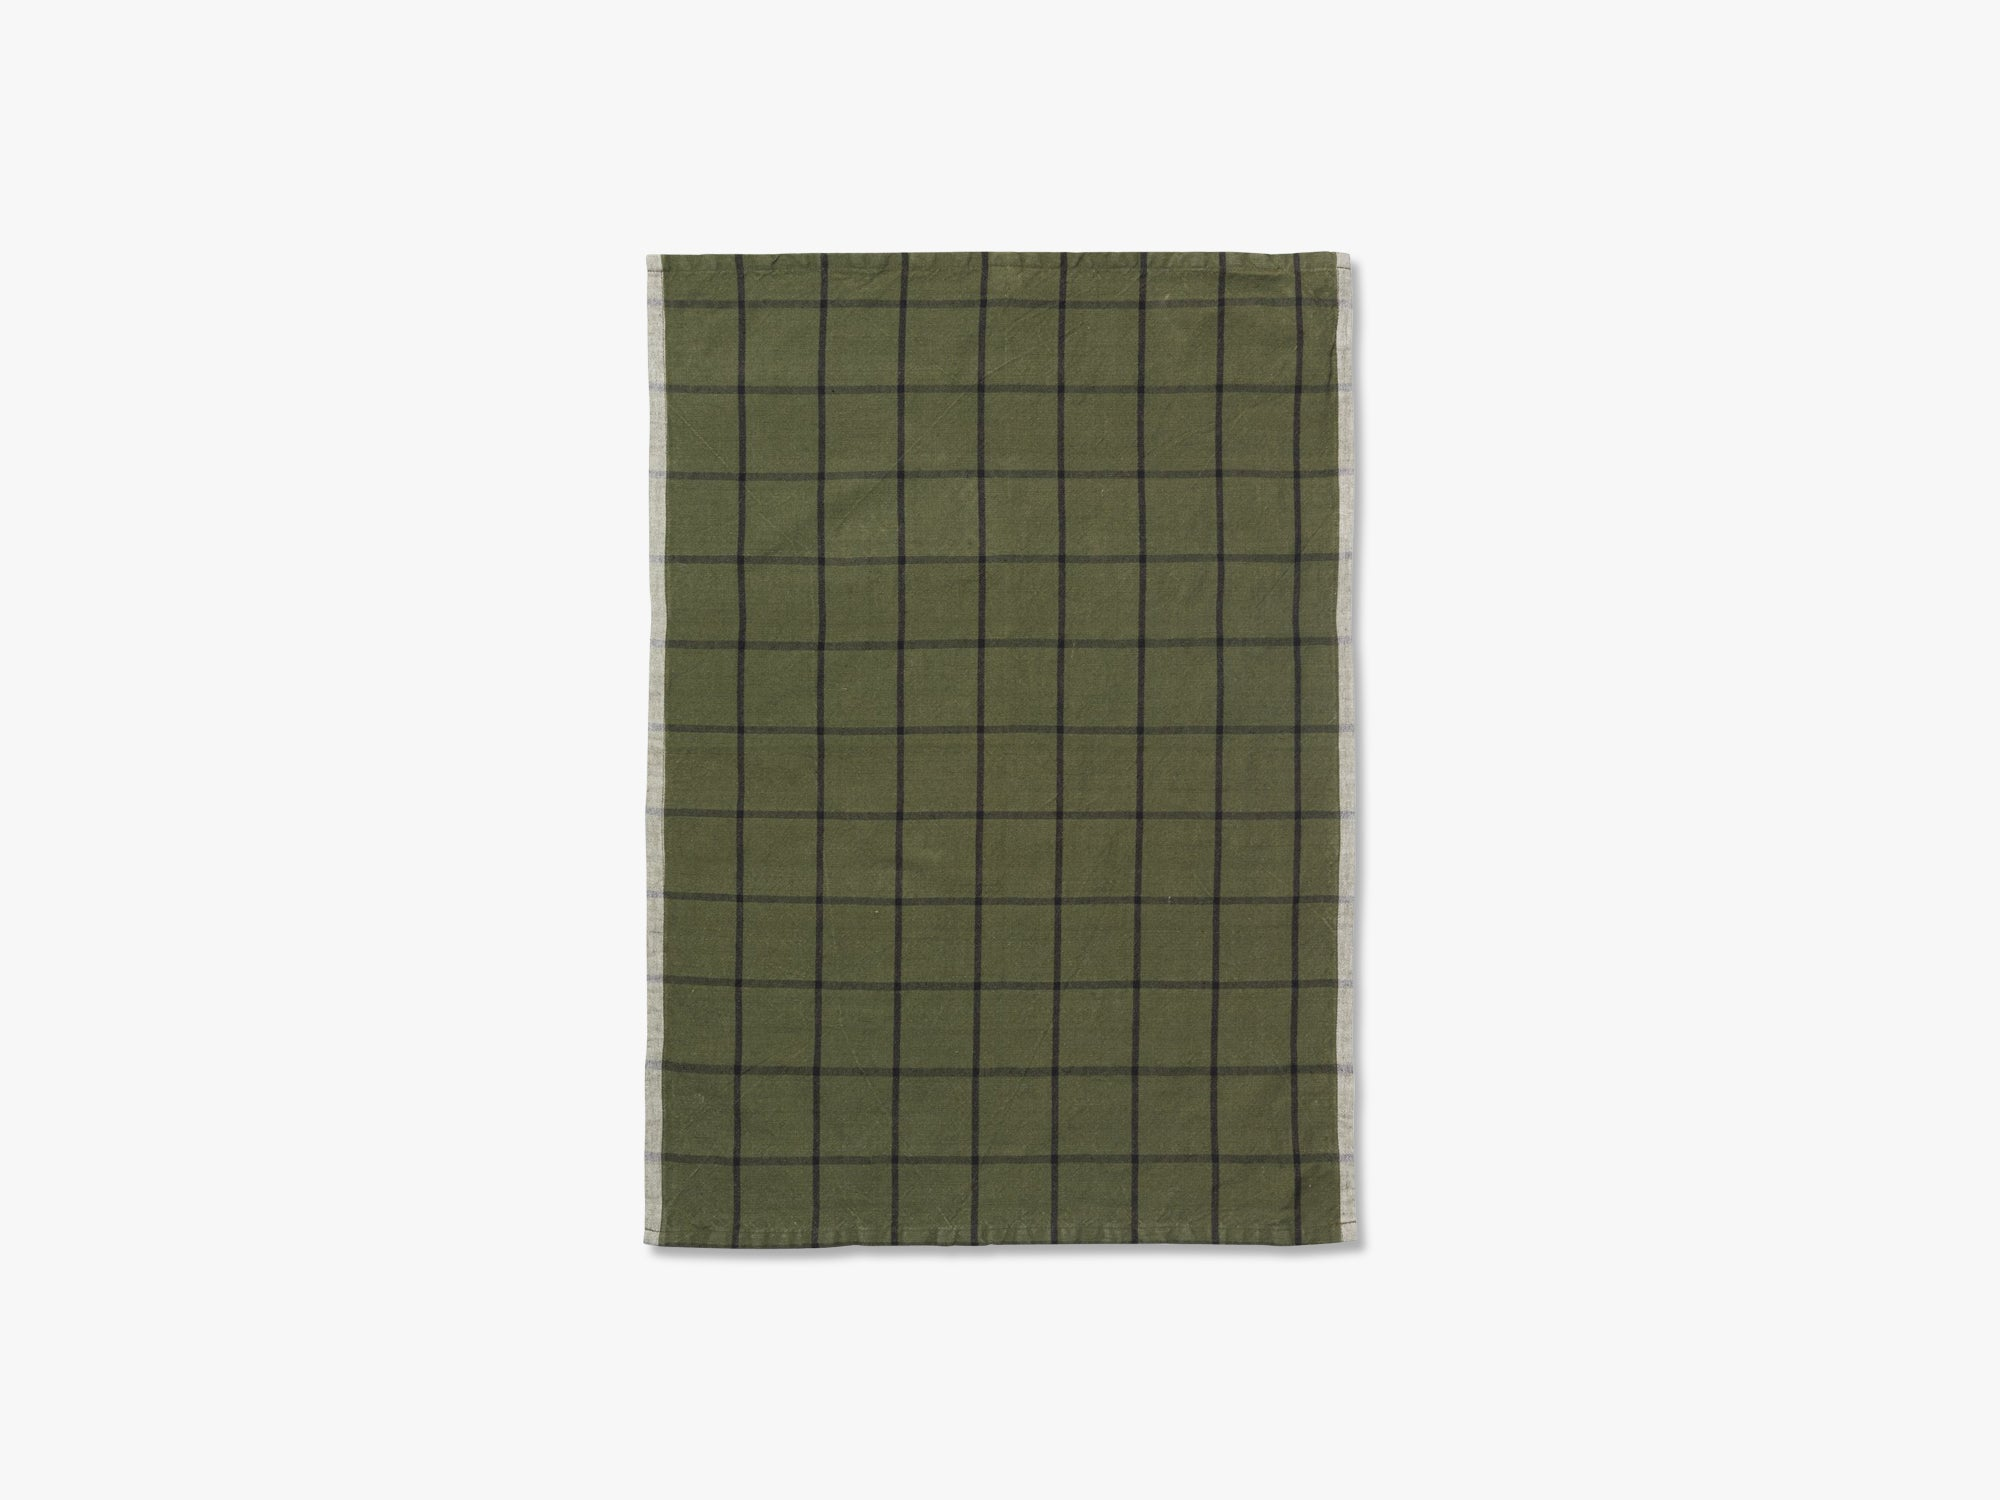 Hale Yarn Dyed Linen Tea Towels, Green/Black fra Ferm Living